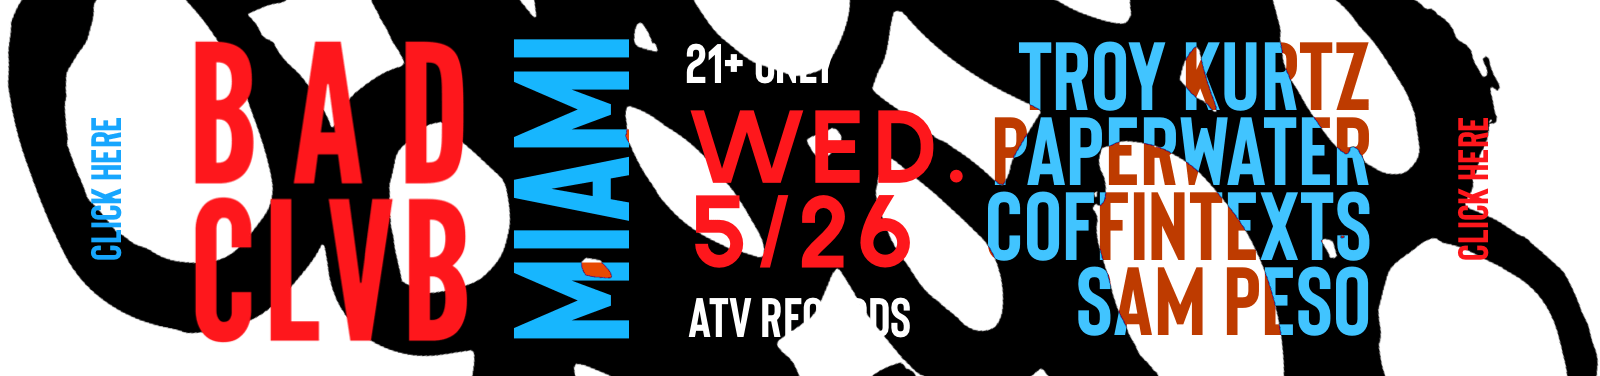 BAD CLVB - May 2021 - ATV Records, Miami